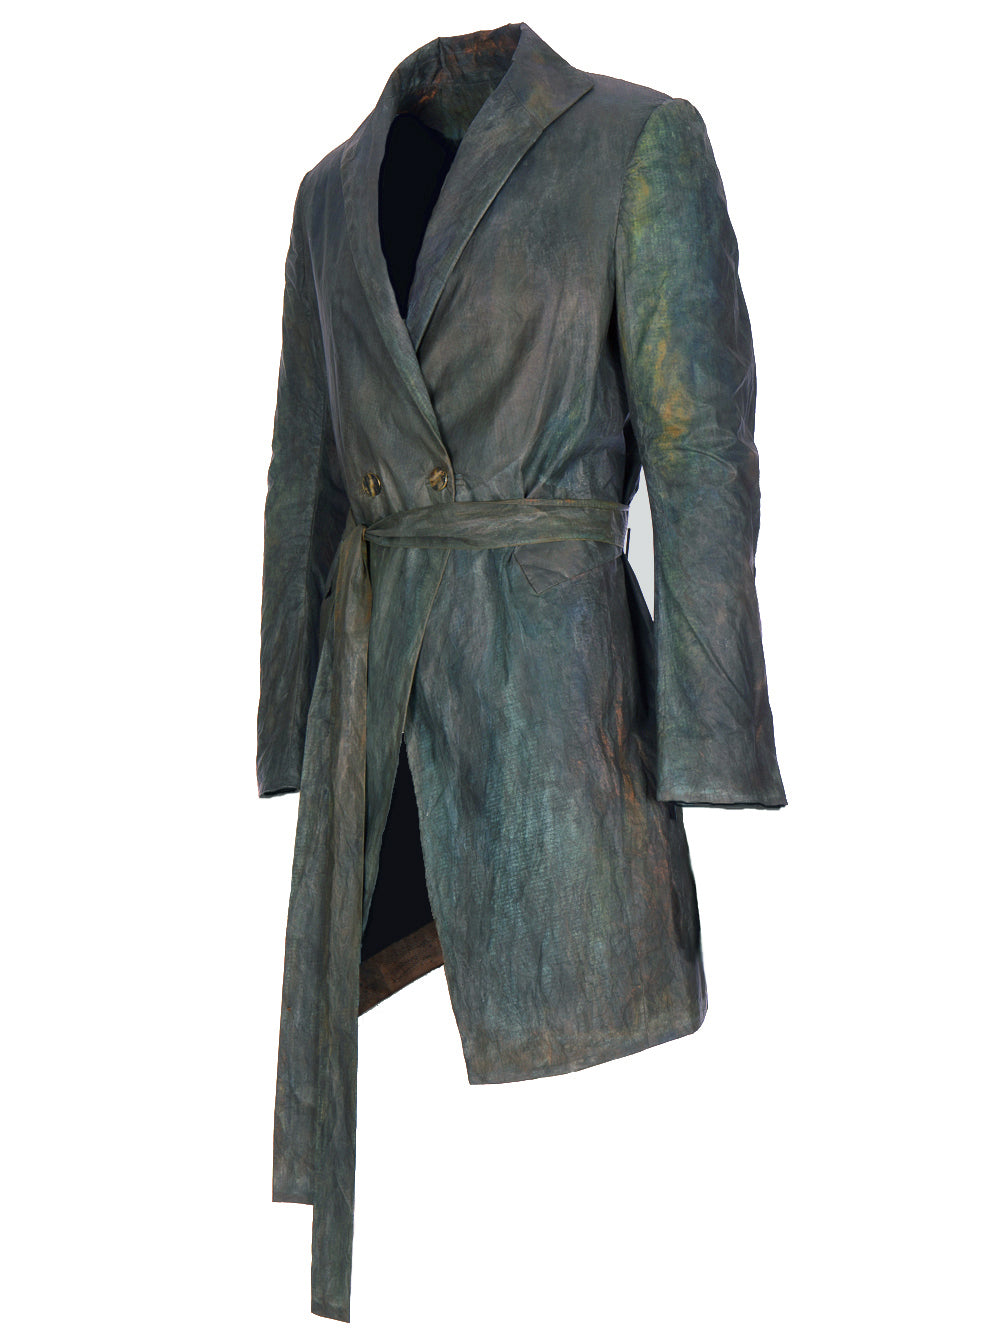 OXIDIZED COPPER BELTED COAT